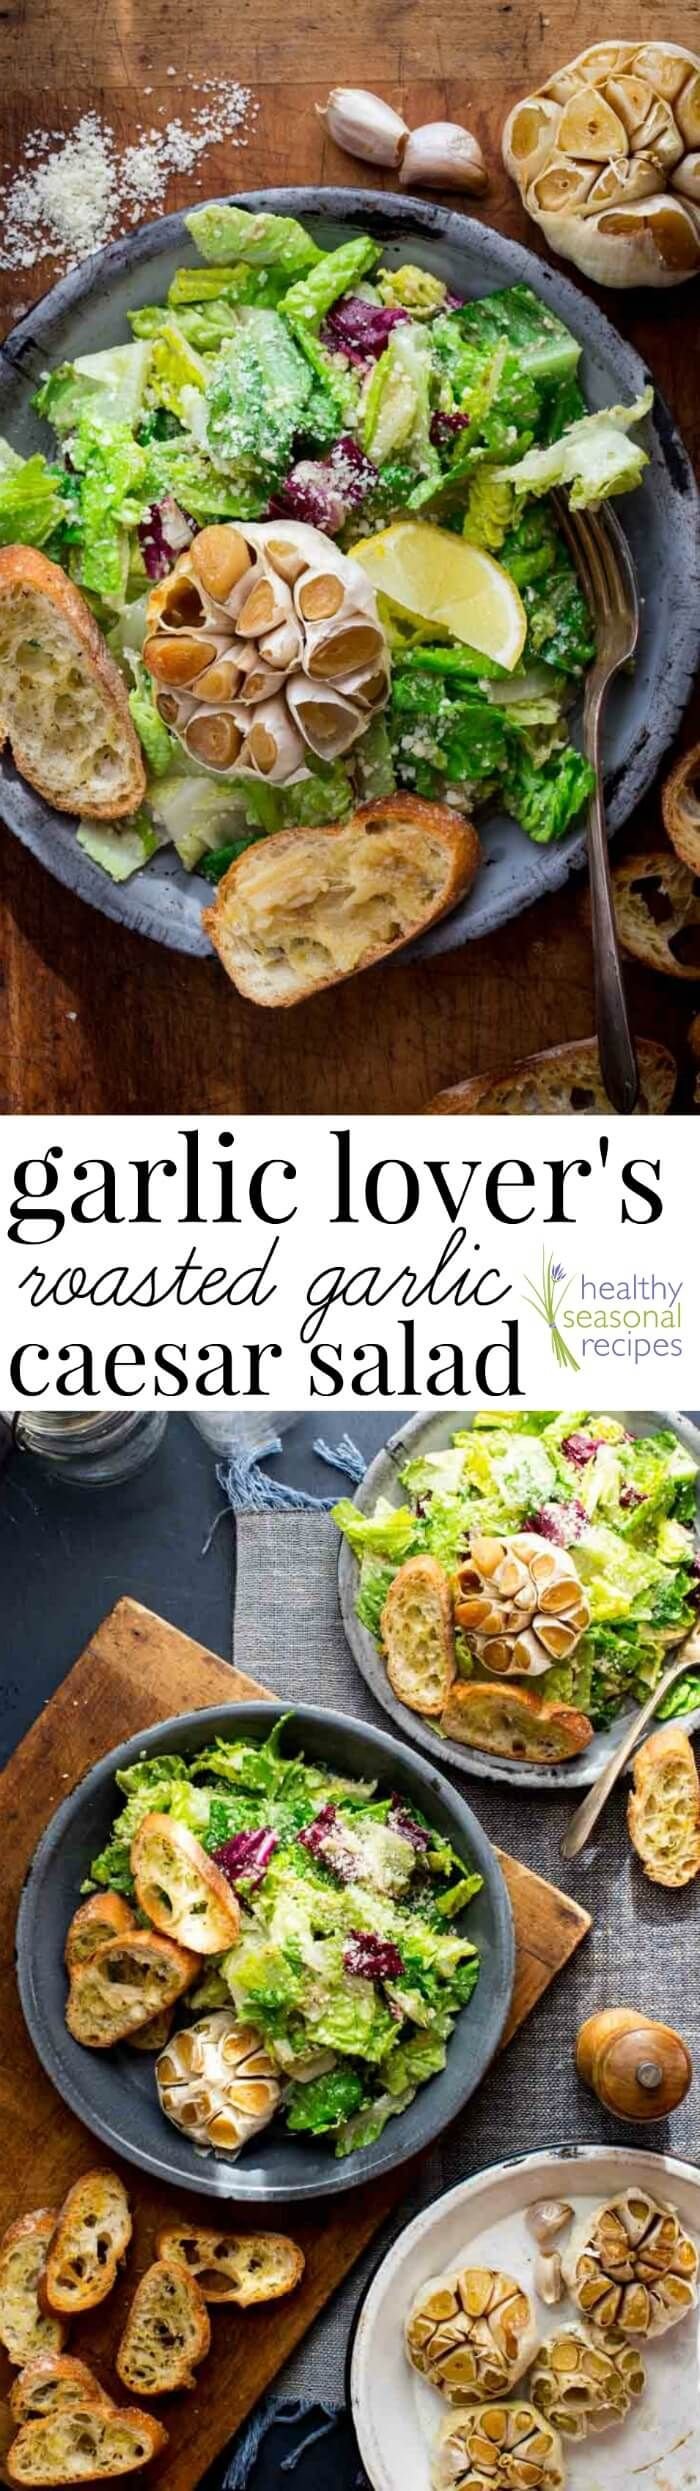 Garlic Lover's Roasted Garlic Caesar Salad, with roasted garlic in the dressing and a whole head of roasted garlic on the side. Healthy Seasonal Recipes   Katie Webster